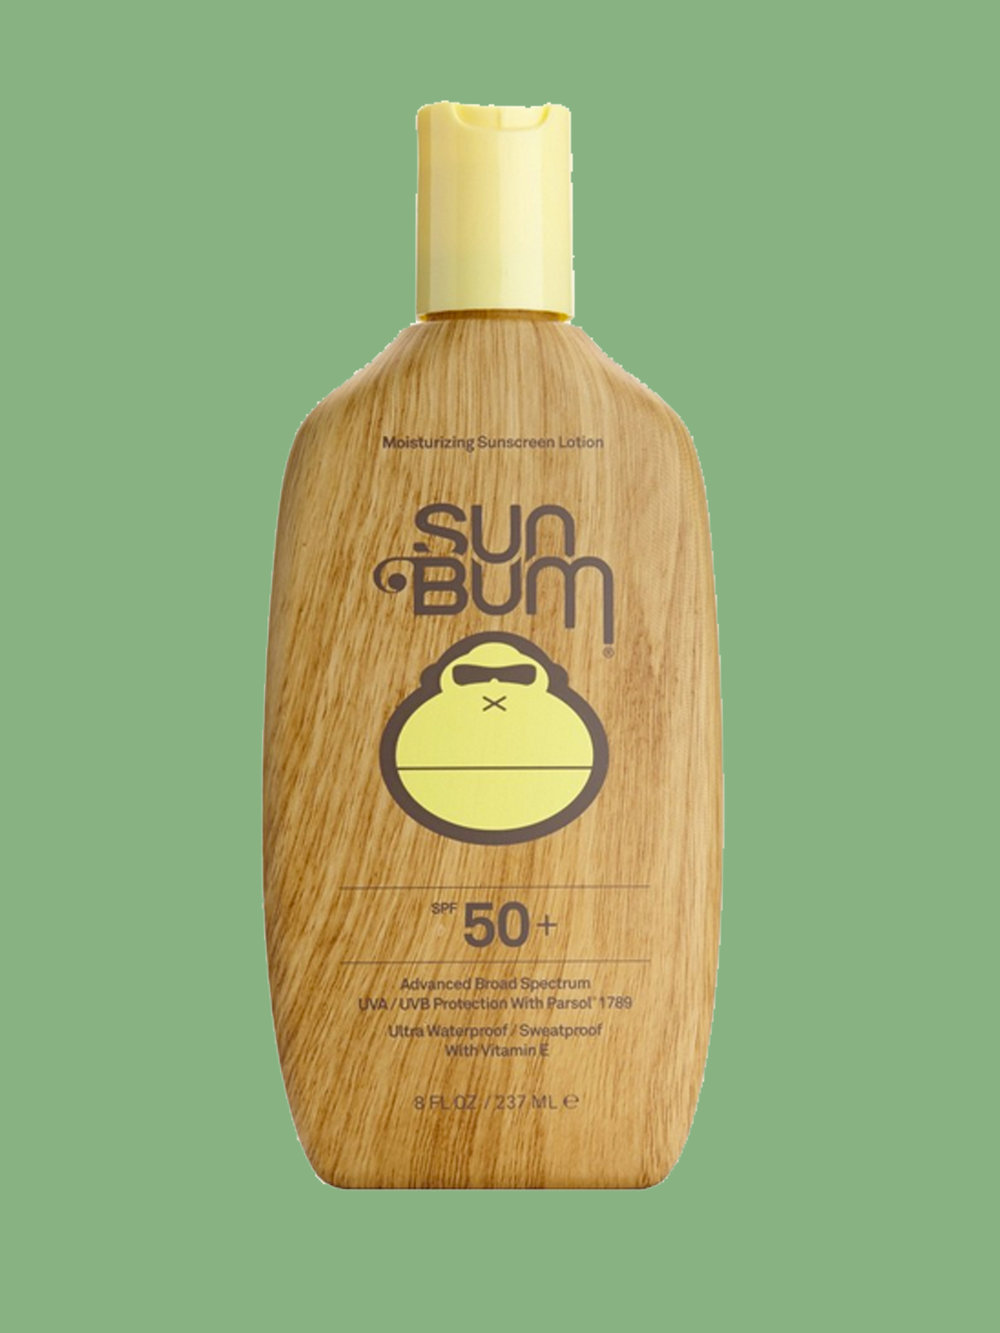 SUNSCREEN: Sun Bum SPF 50 Lotion